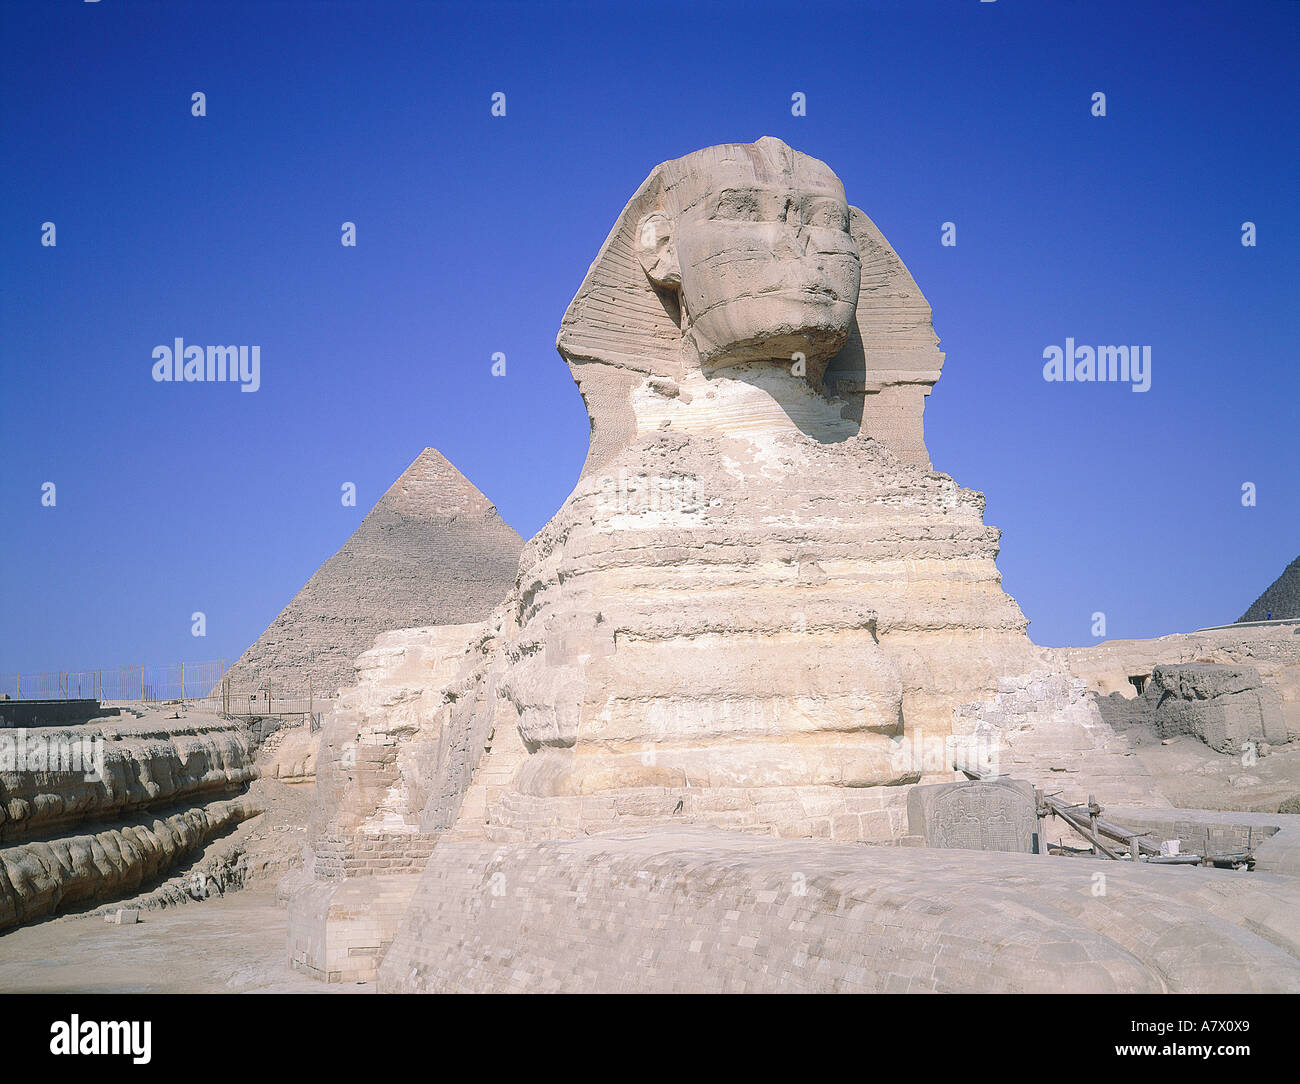 Egypt, Cairo, Gizeh, Sphinx and the pyramid of Kephren - Stock Image